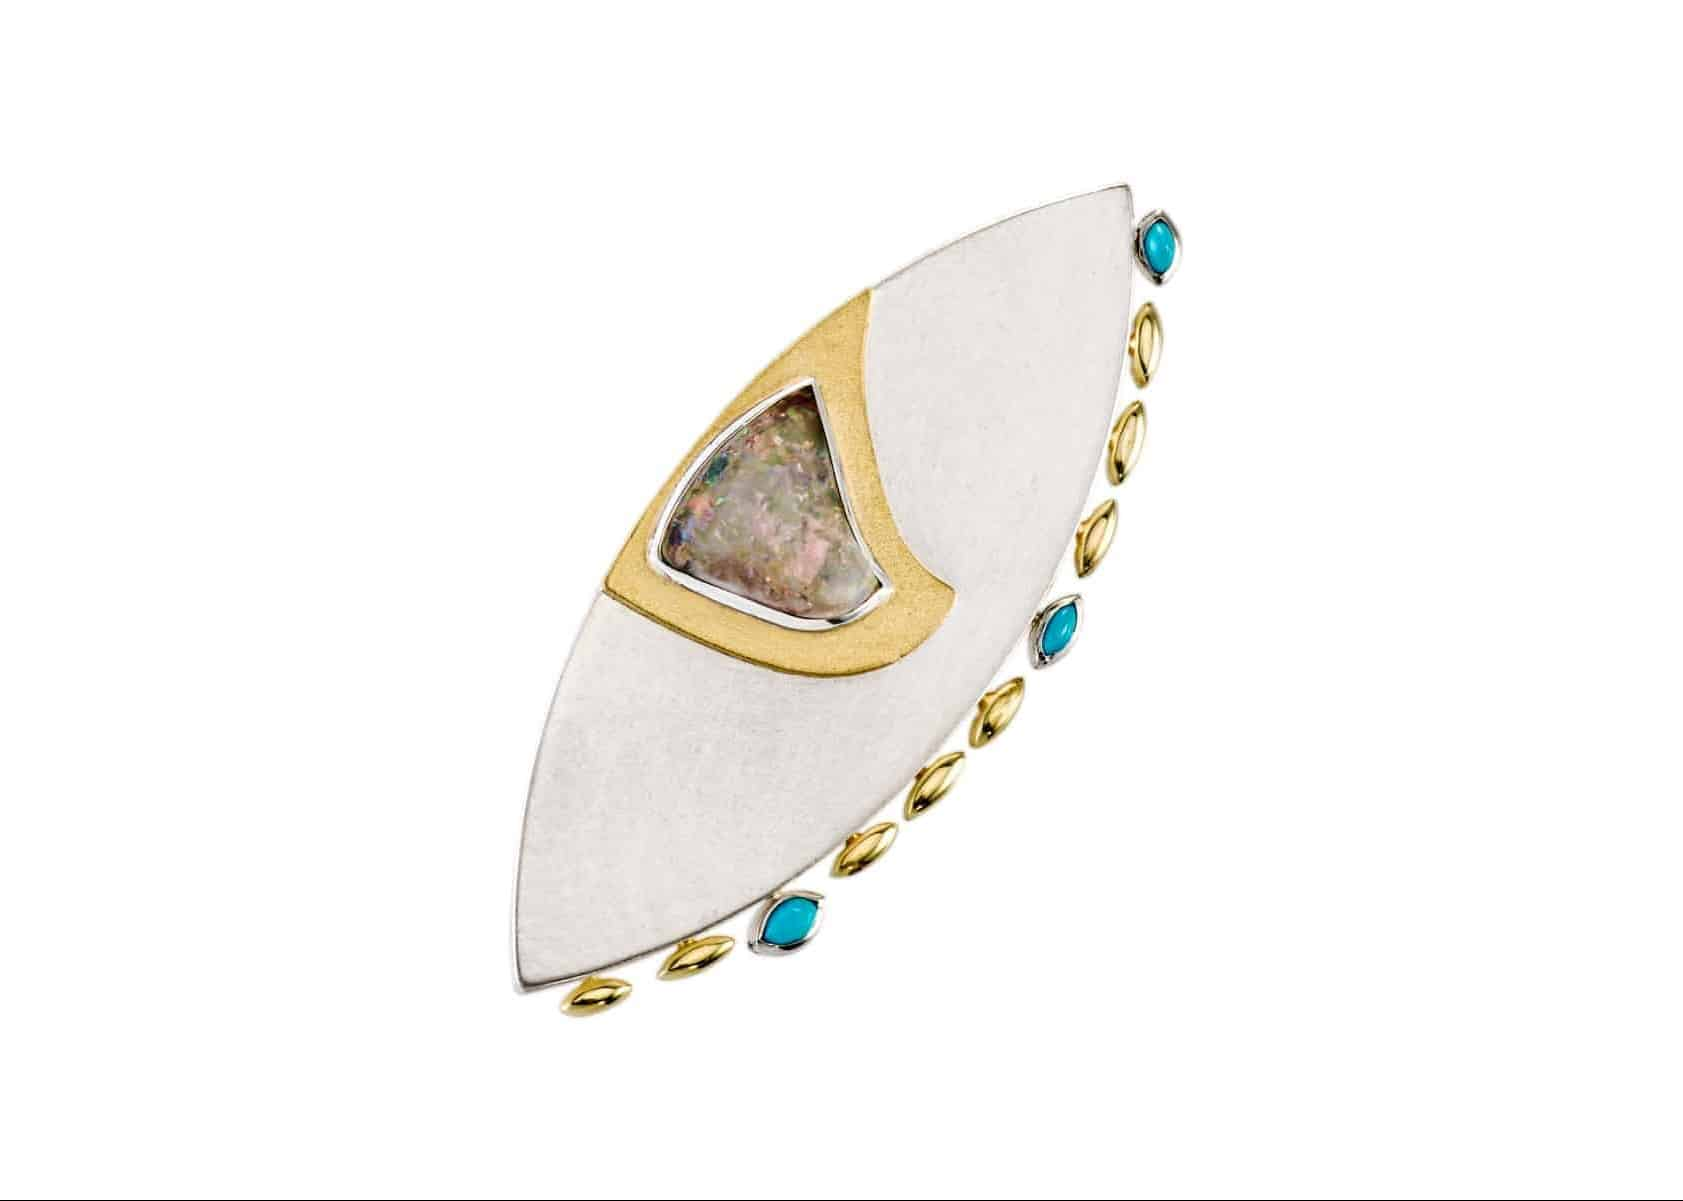 Sterling silver, 18k, opal and turquoise brooch / pendant by Janis Kerman